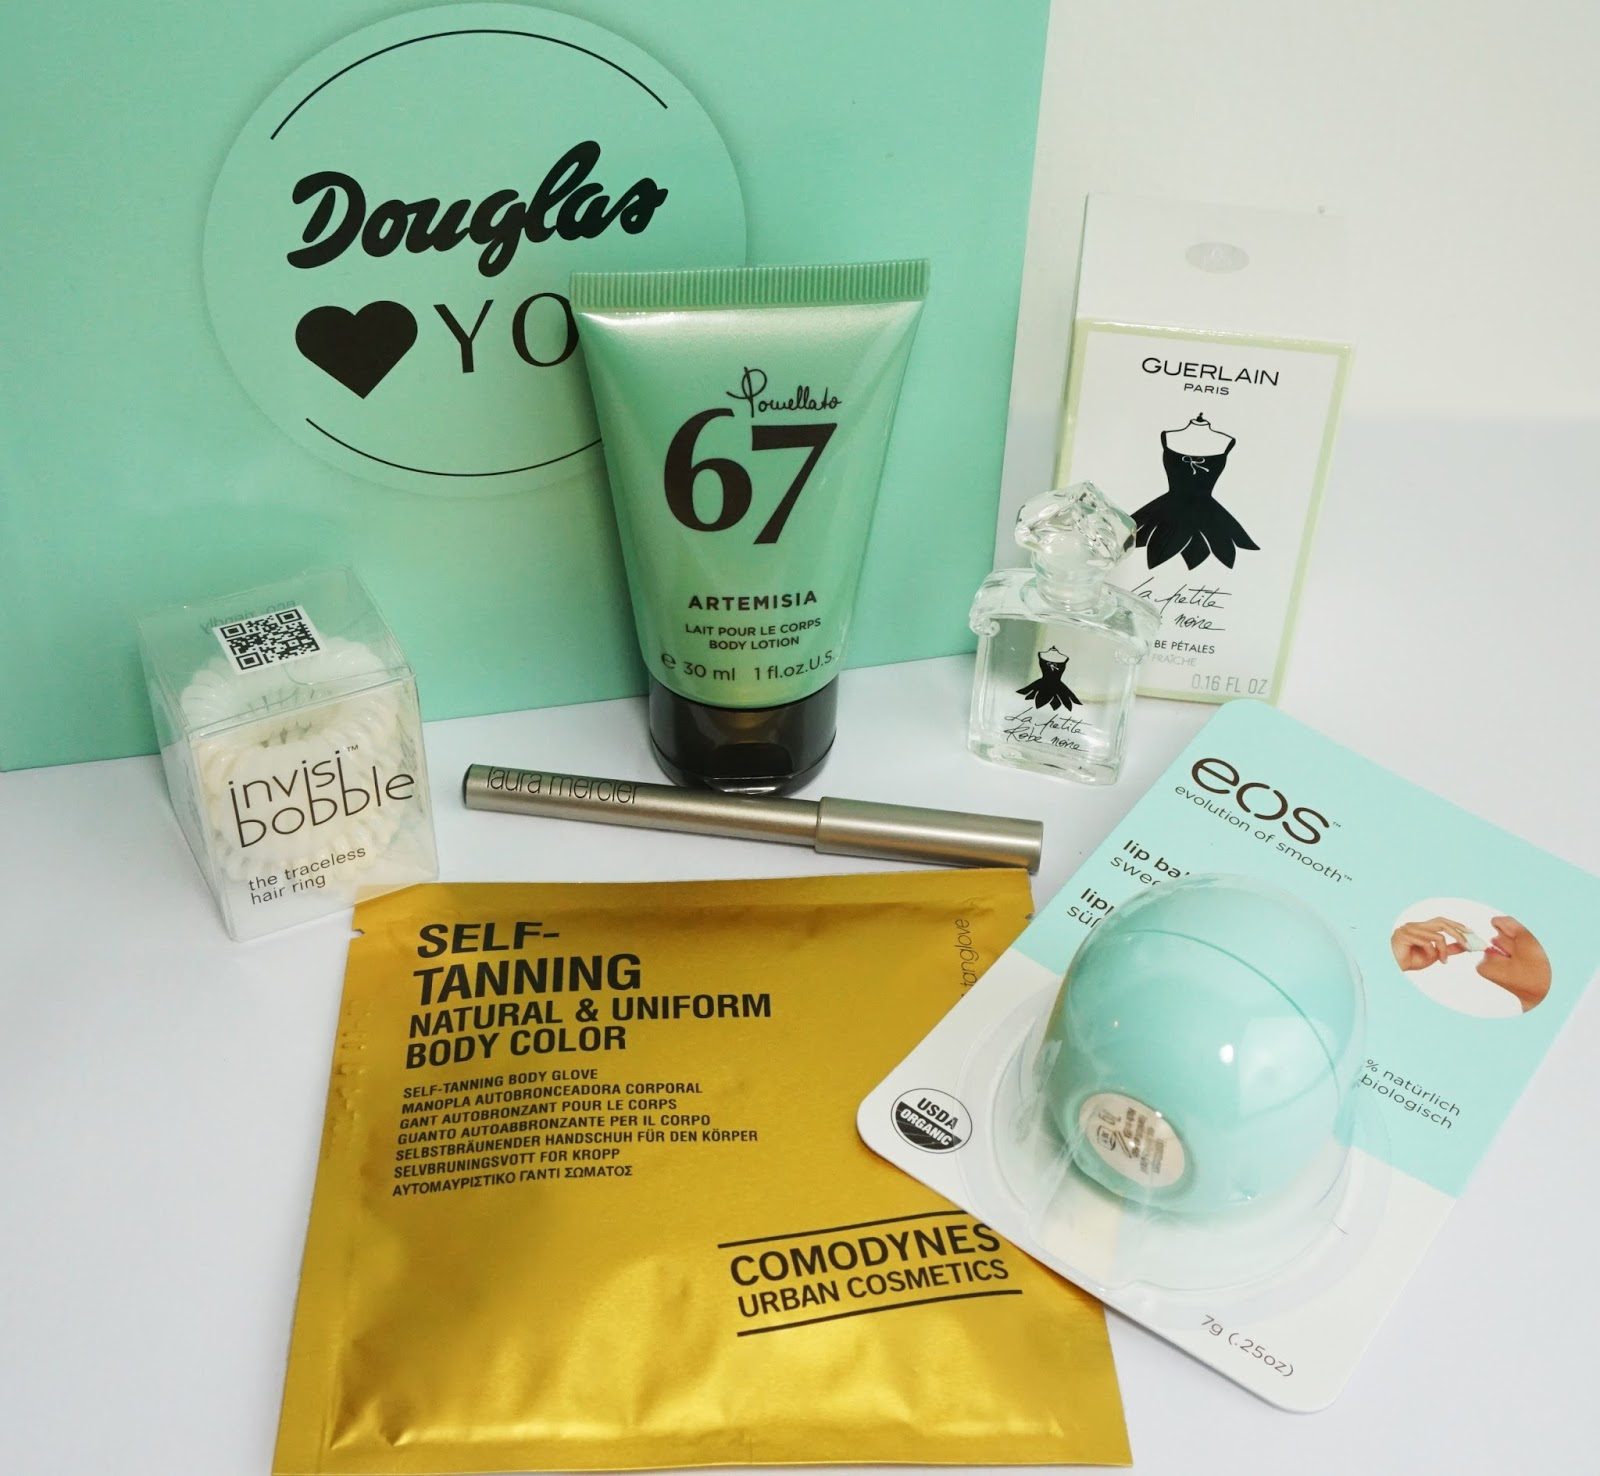 Douglas - Box of Beauty (April 2015 - Österreich-Edition) eos, guerlain, invisibobble